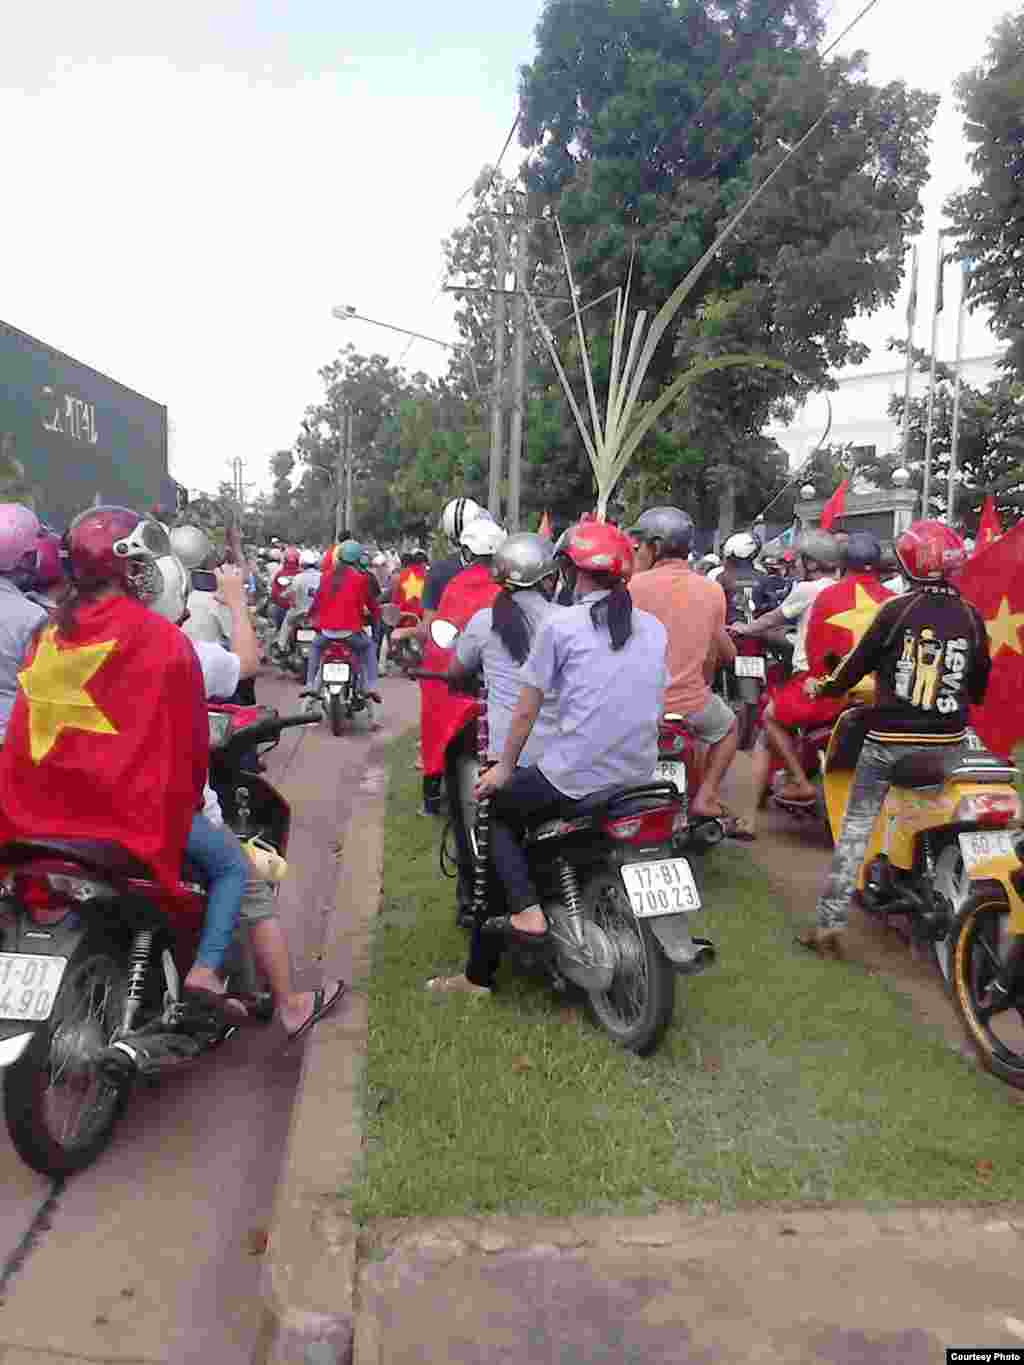 Protesters gathered at Amata Industrial Park, Bien Hoa City, Dong Nai Province, Vietnam.